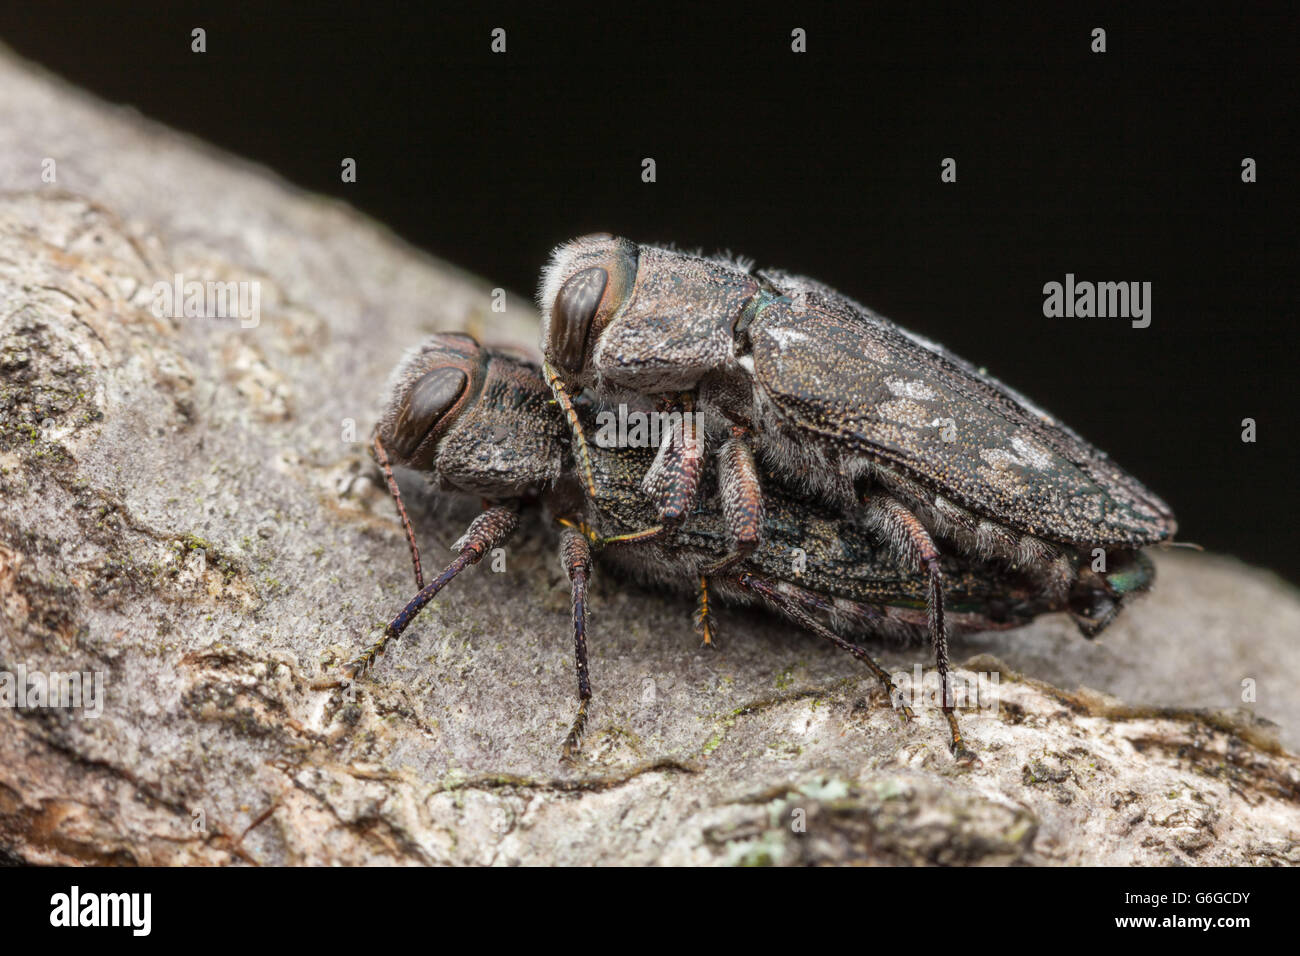 A pair of Metallic Wood-boring Beetles (Chrysobothris rugosiceps) mate on a branch of a fallen oak tree. - Stock Image